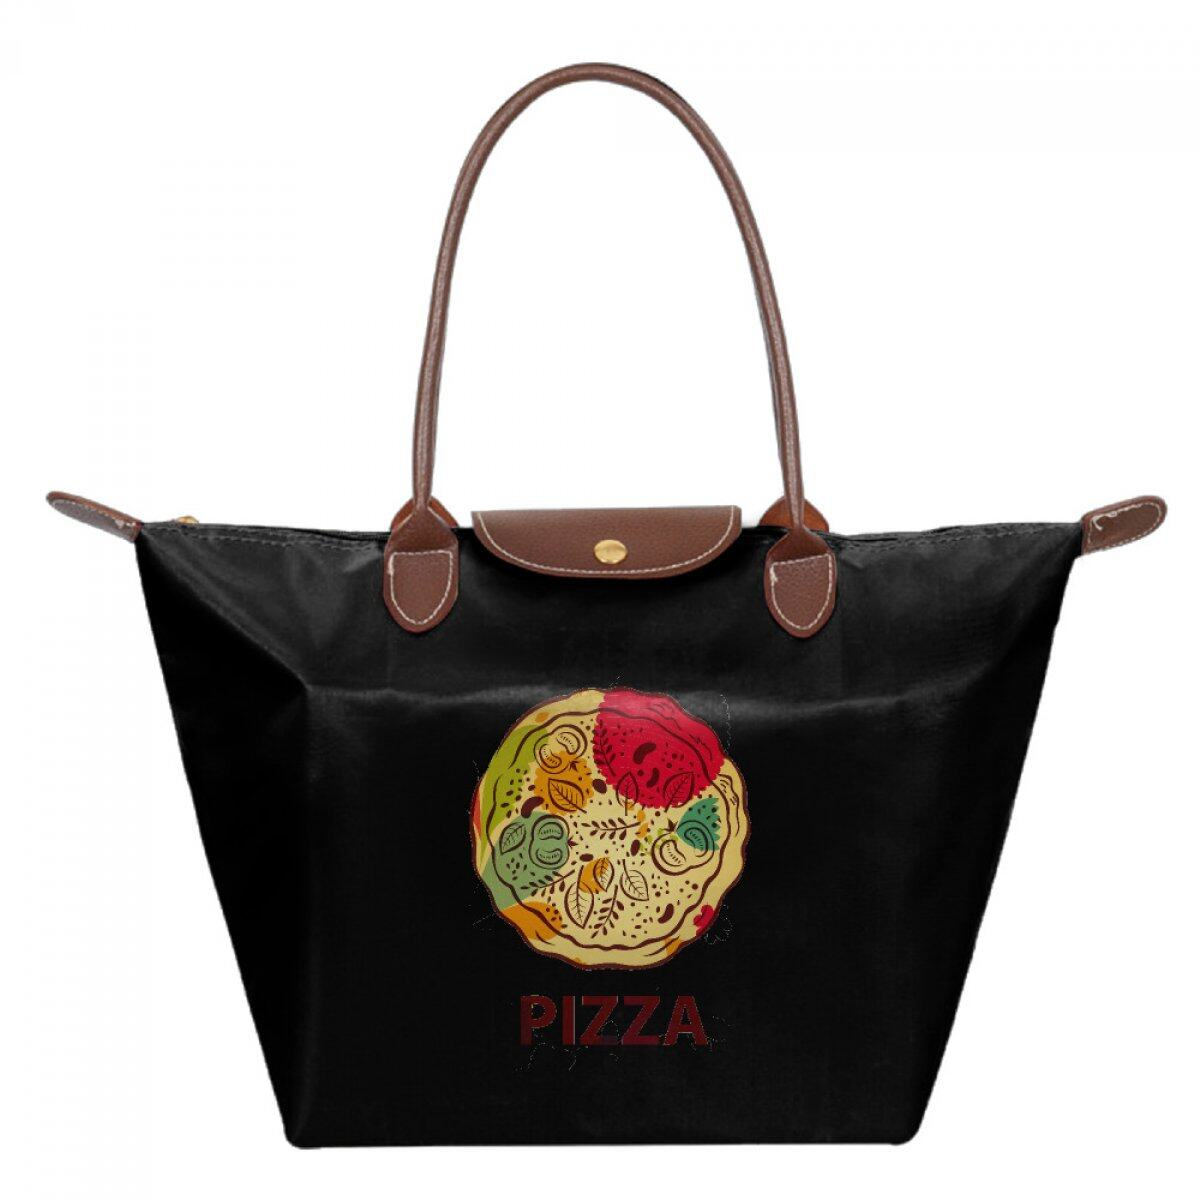 PhoRock Women Casual Waterproof Tote  Nylon Red Pizza Printed  Foldable Dumpling Bags JZMS006 0